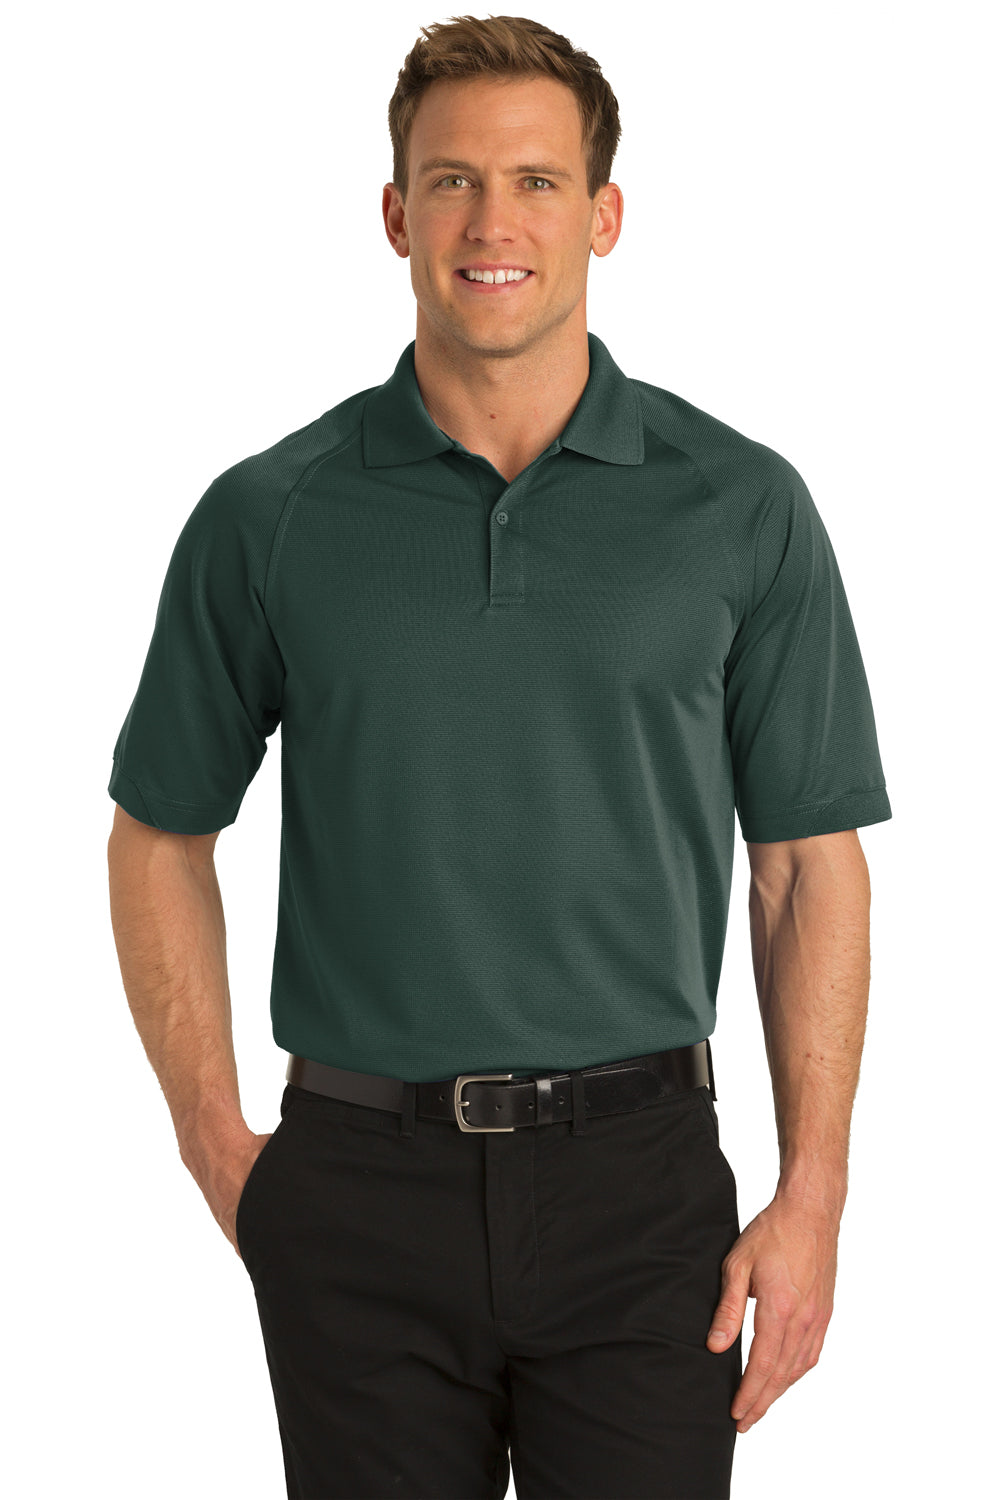 Port Authority K525 Mens Dry Zone Moisture Wicking Short Sleeve Polo Shirt Dark Green Front